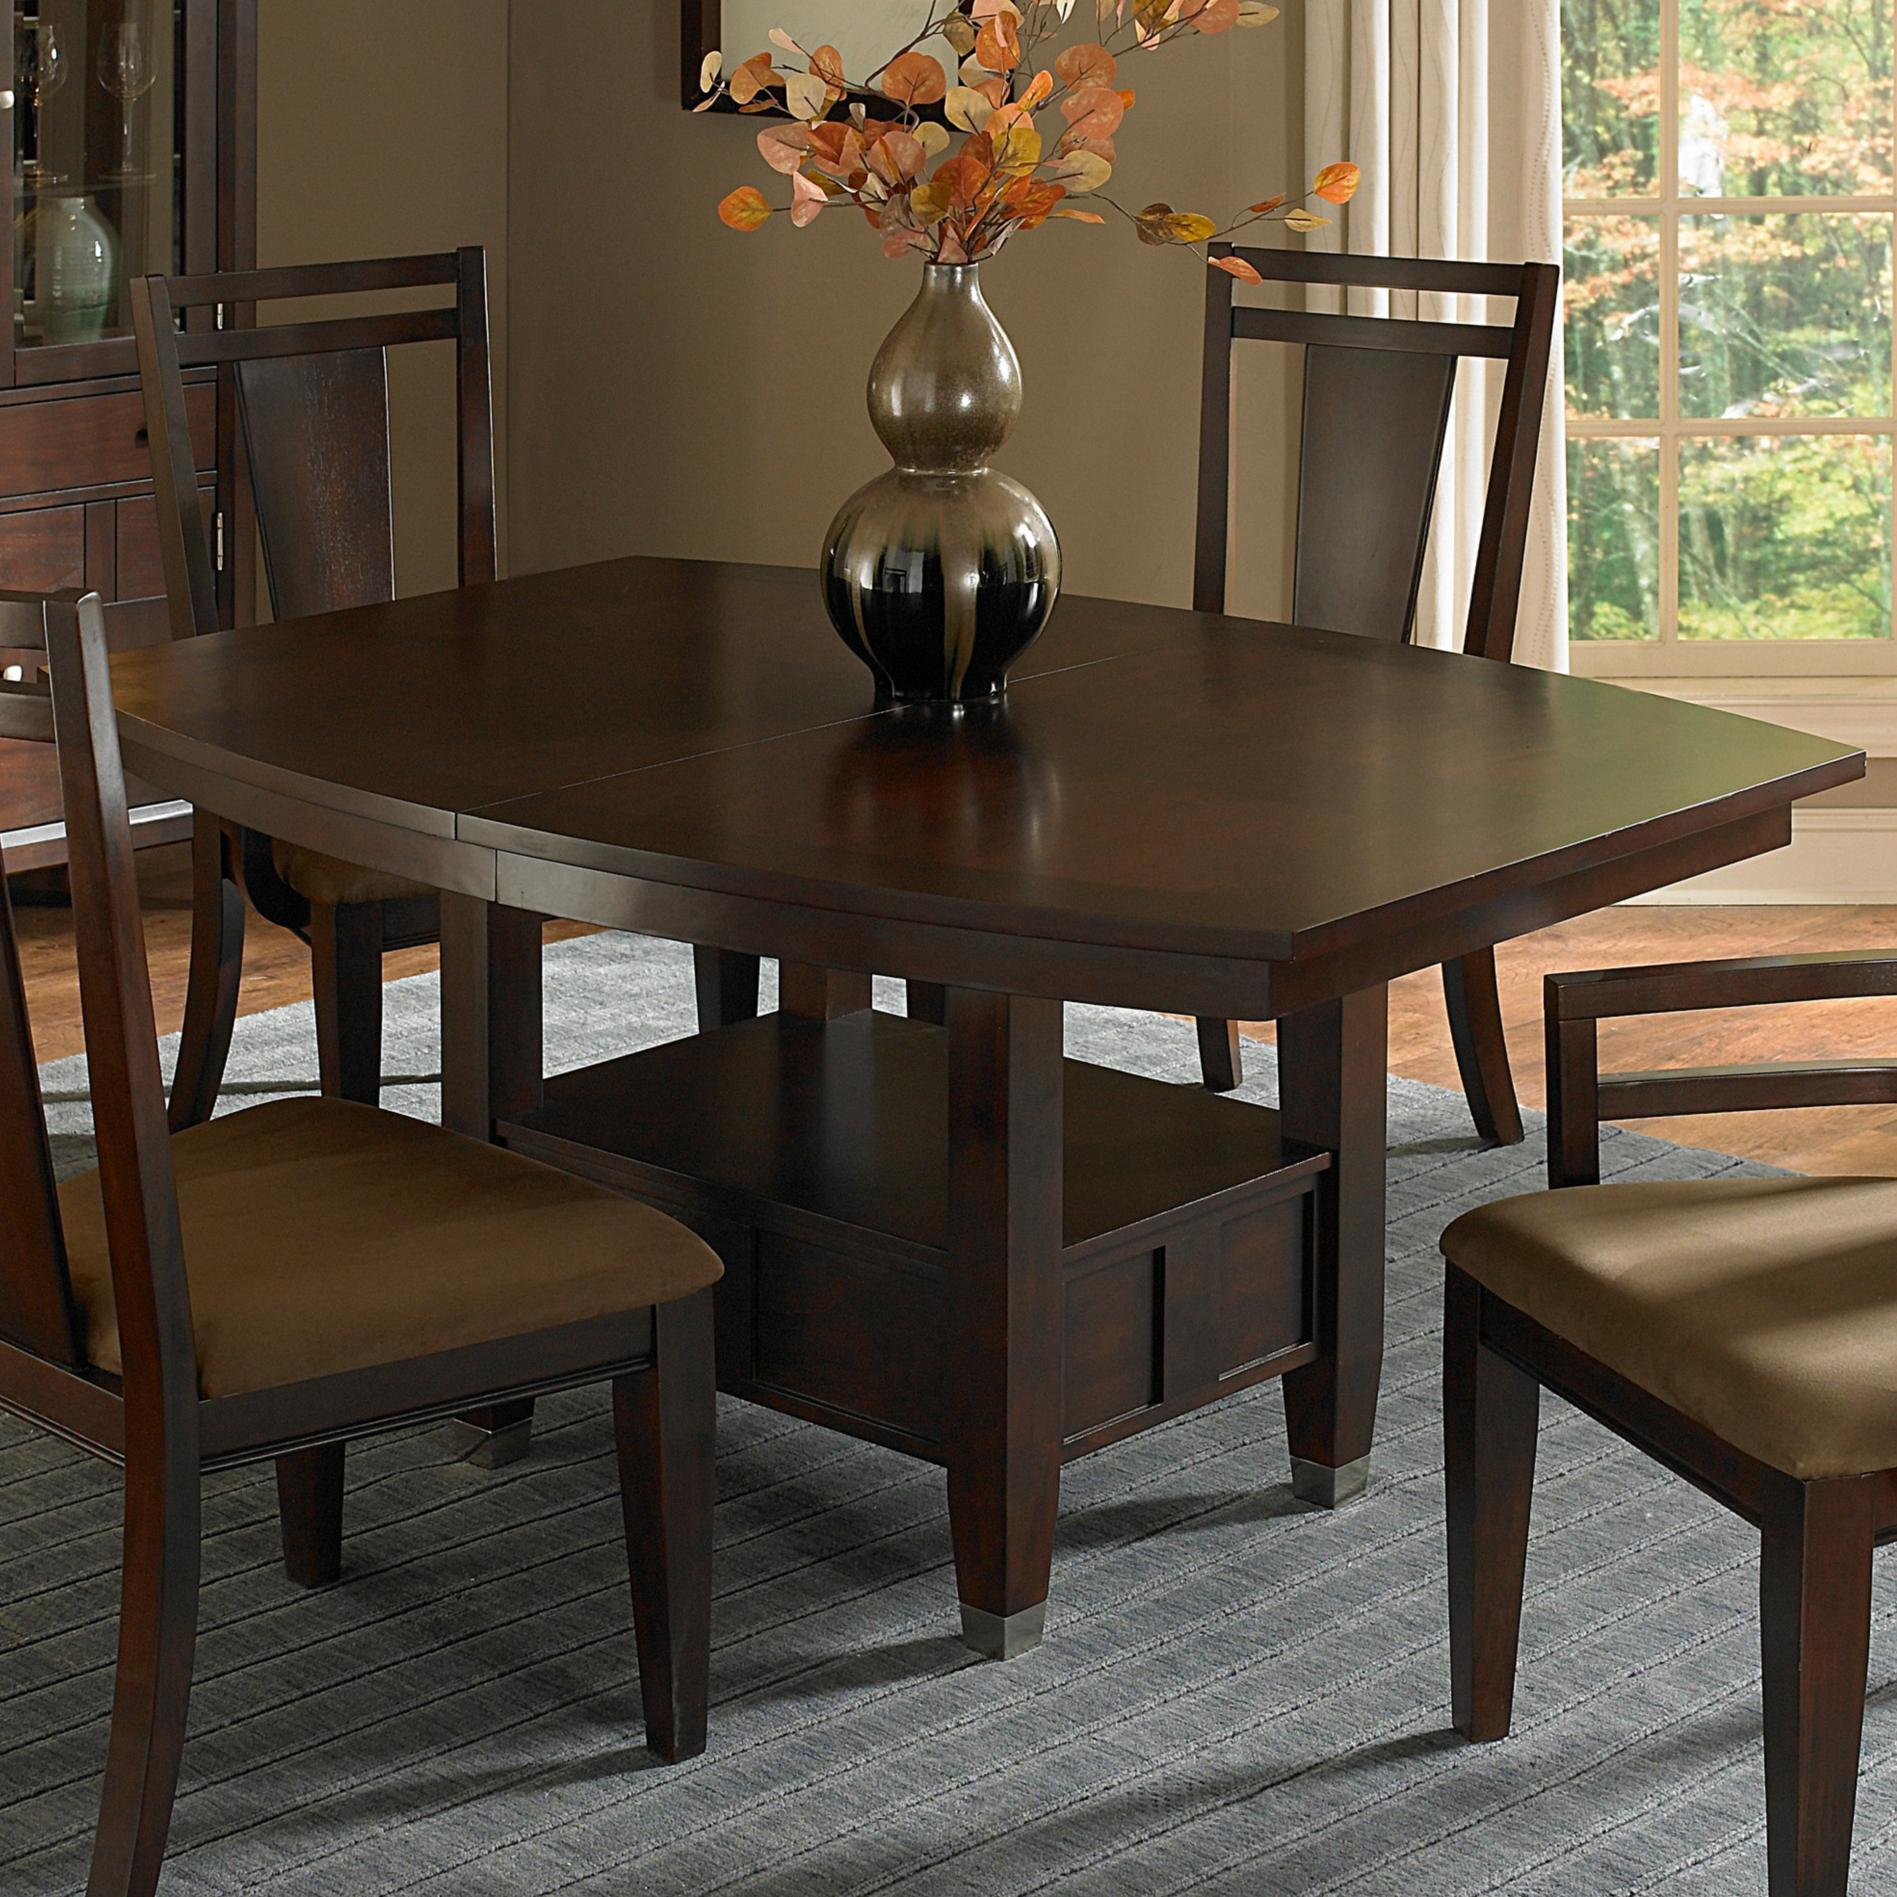 Broyhill Furniture Northern Lights Ajustable Height Dining Table With Storage Base